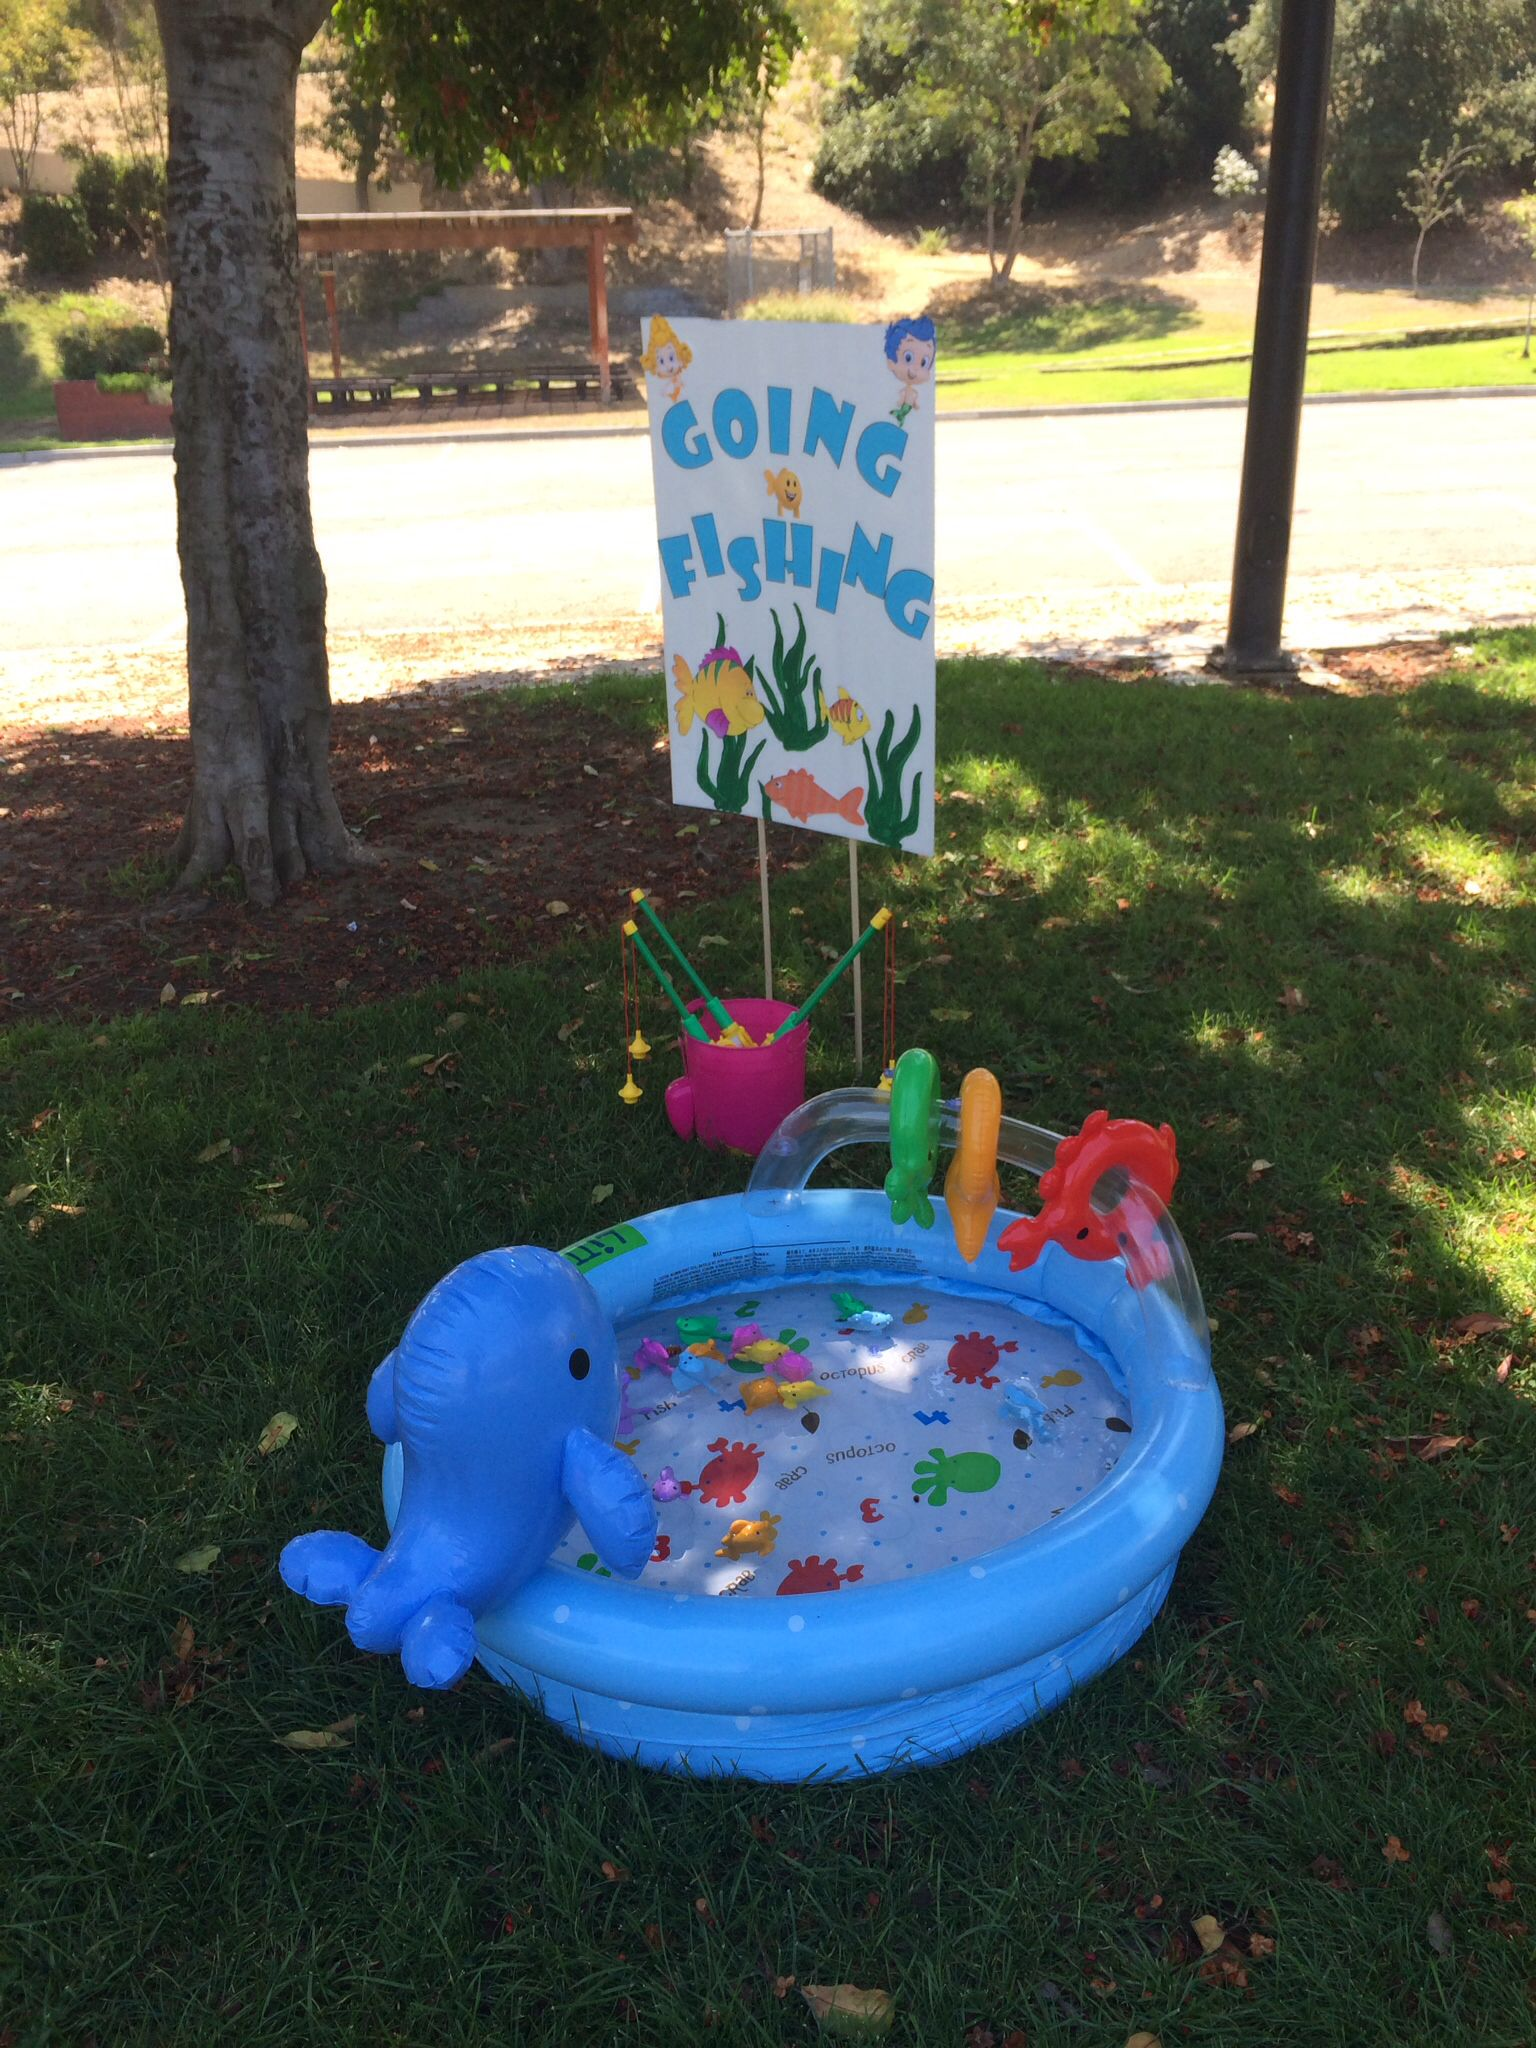 Going fishing great game for kids you can purchase the